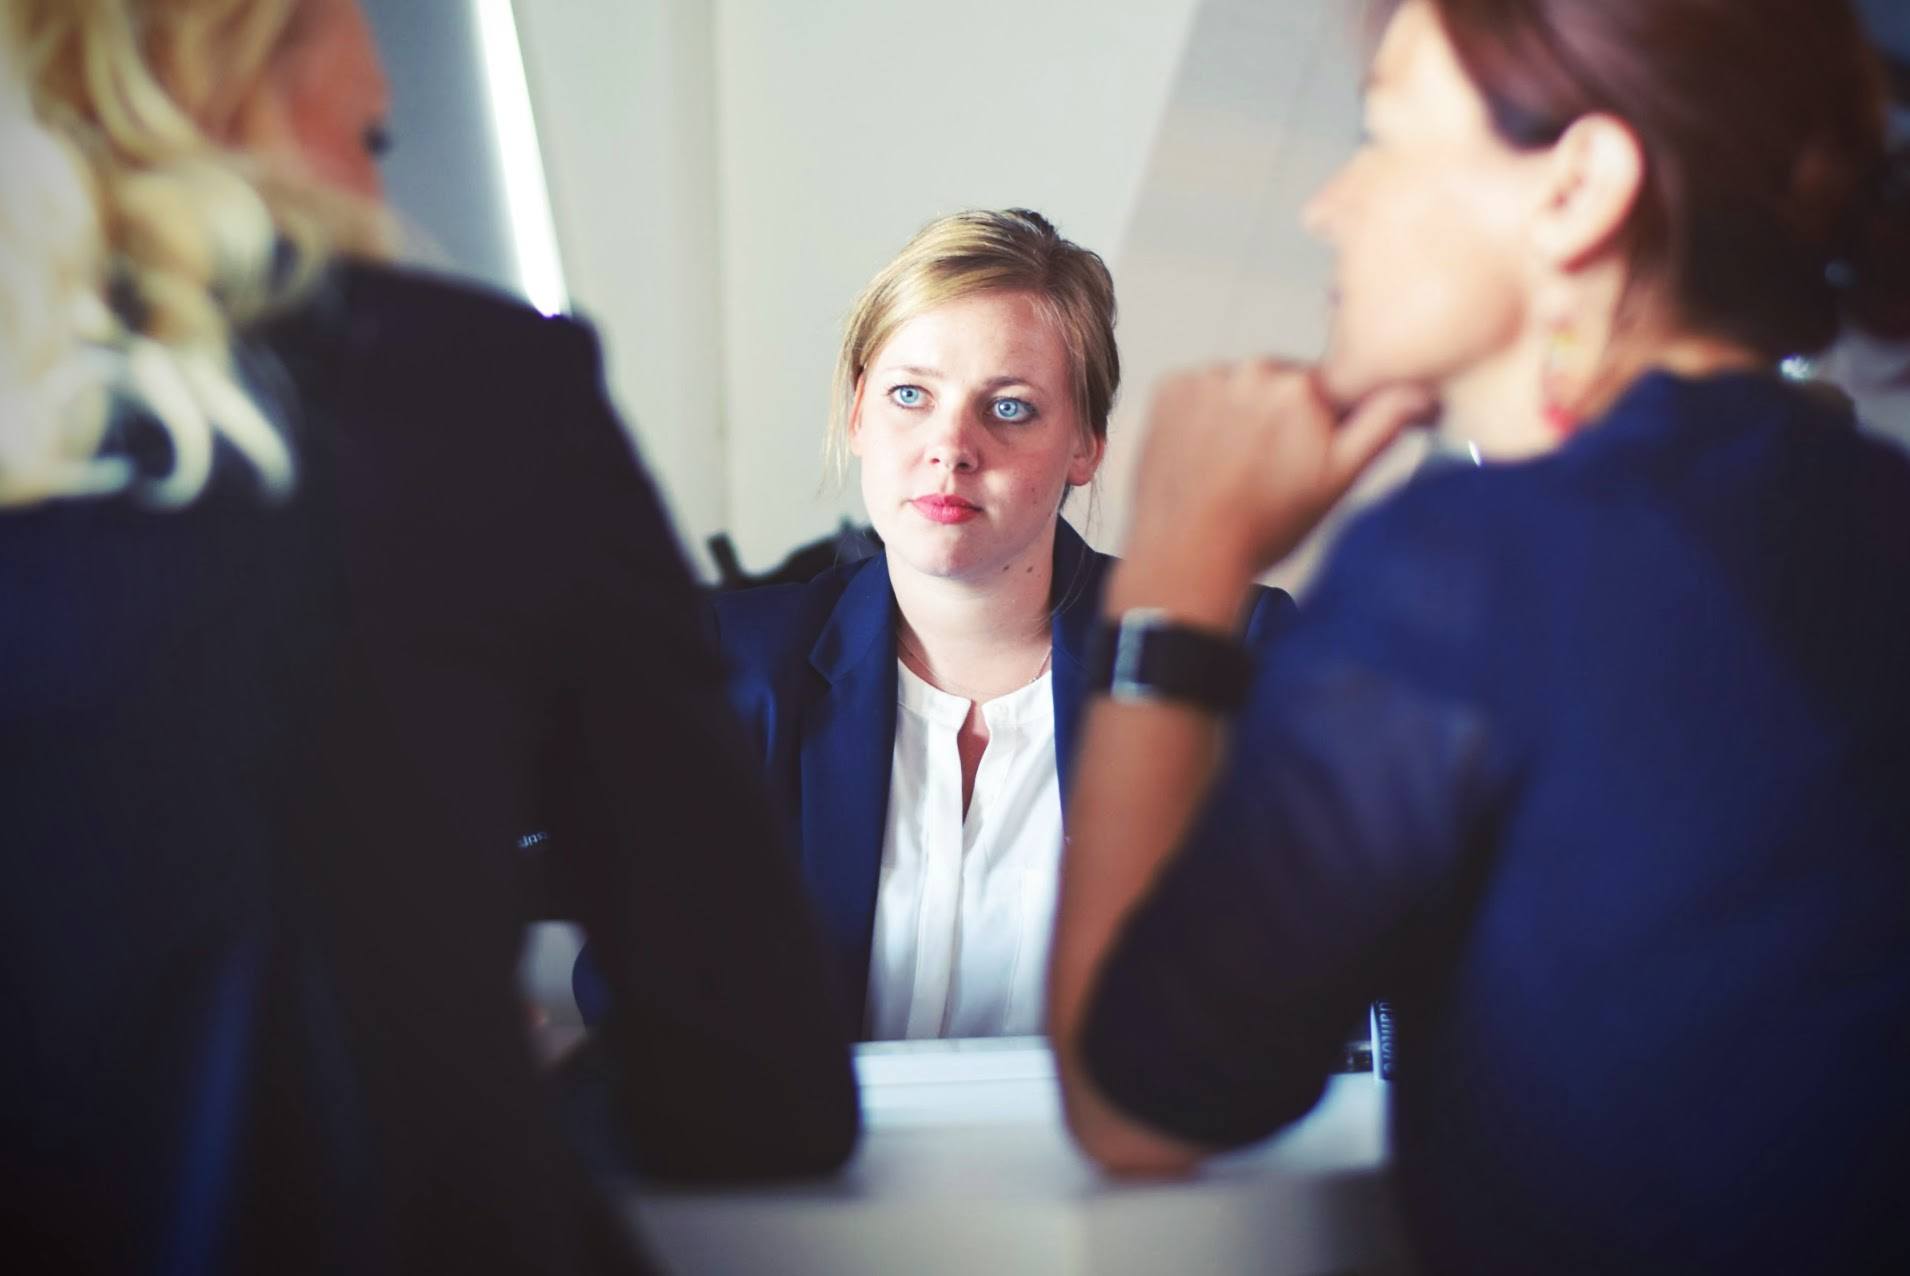 How to rock your job interview